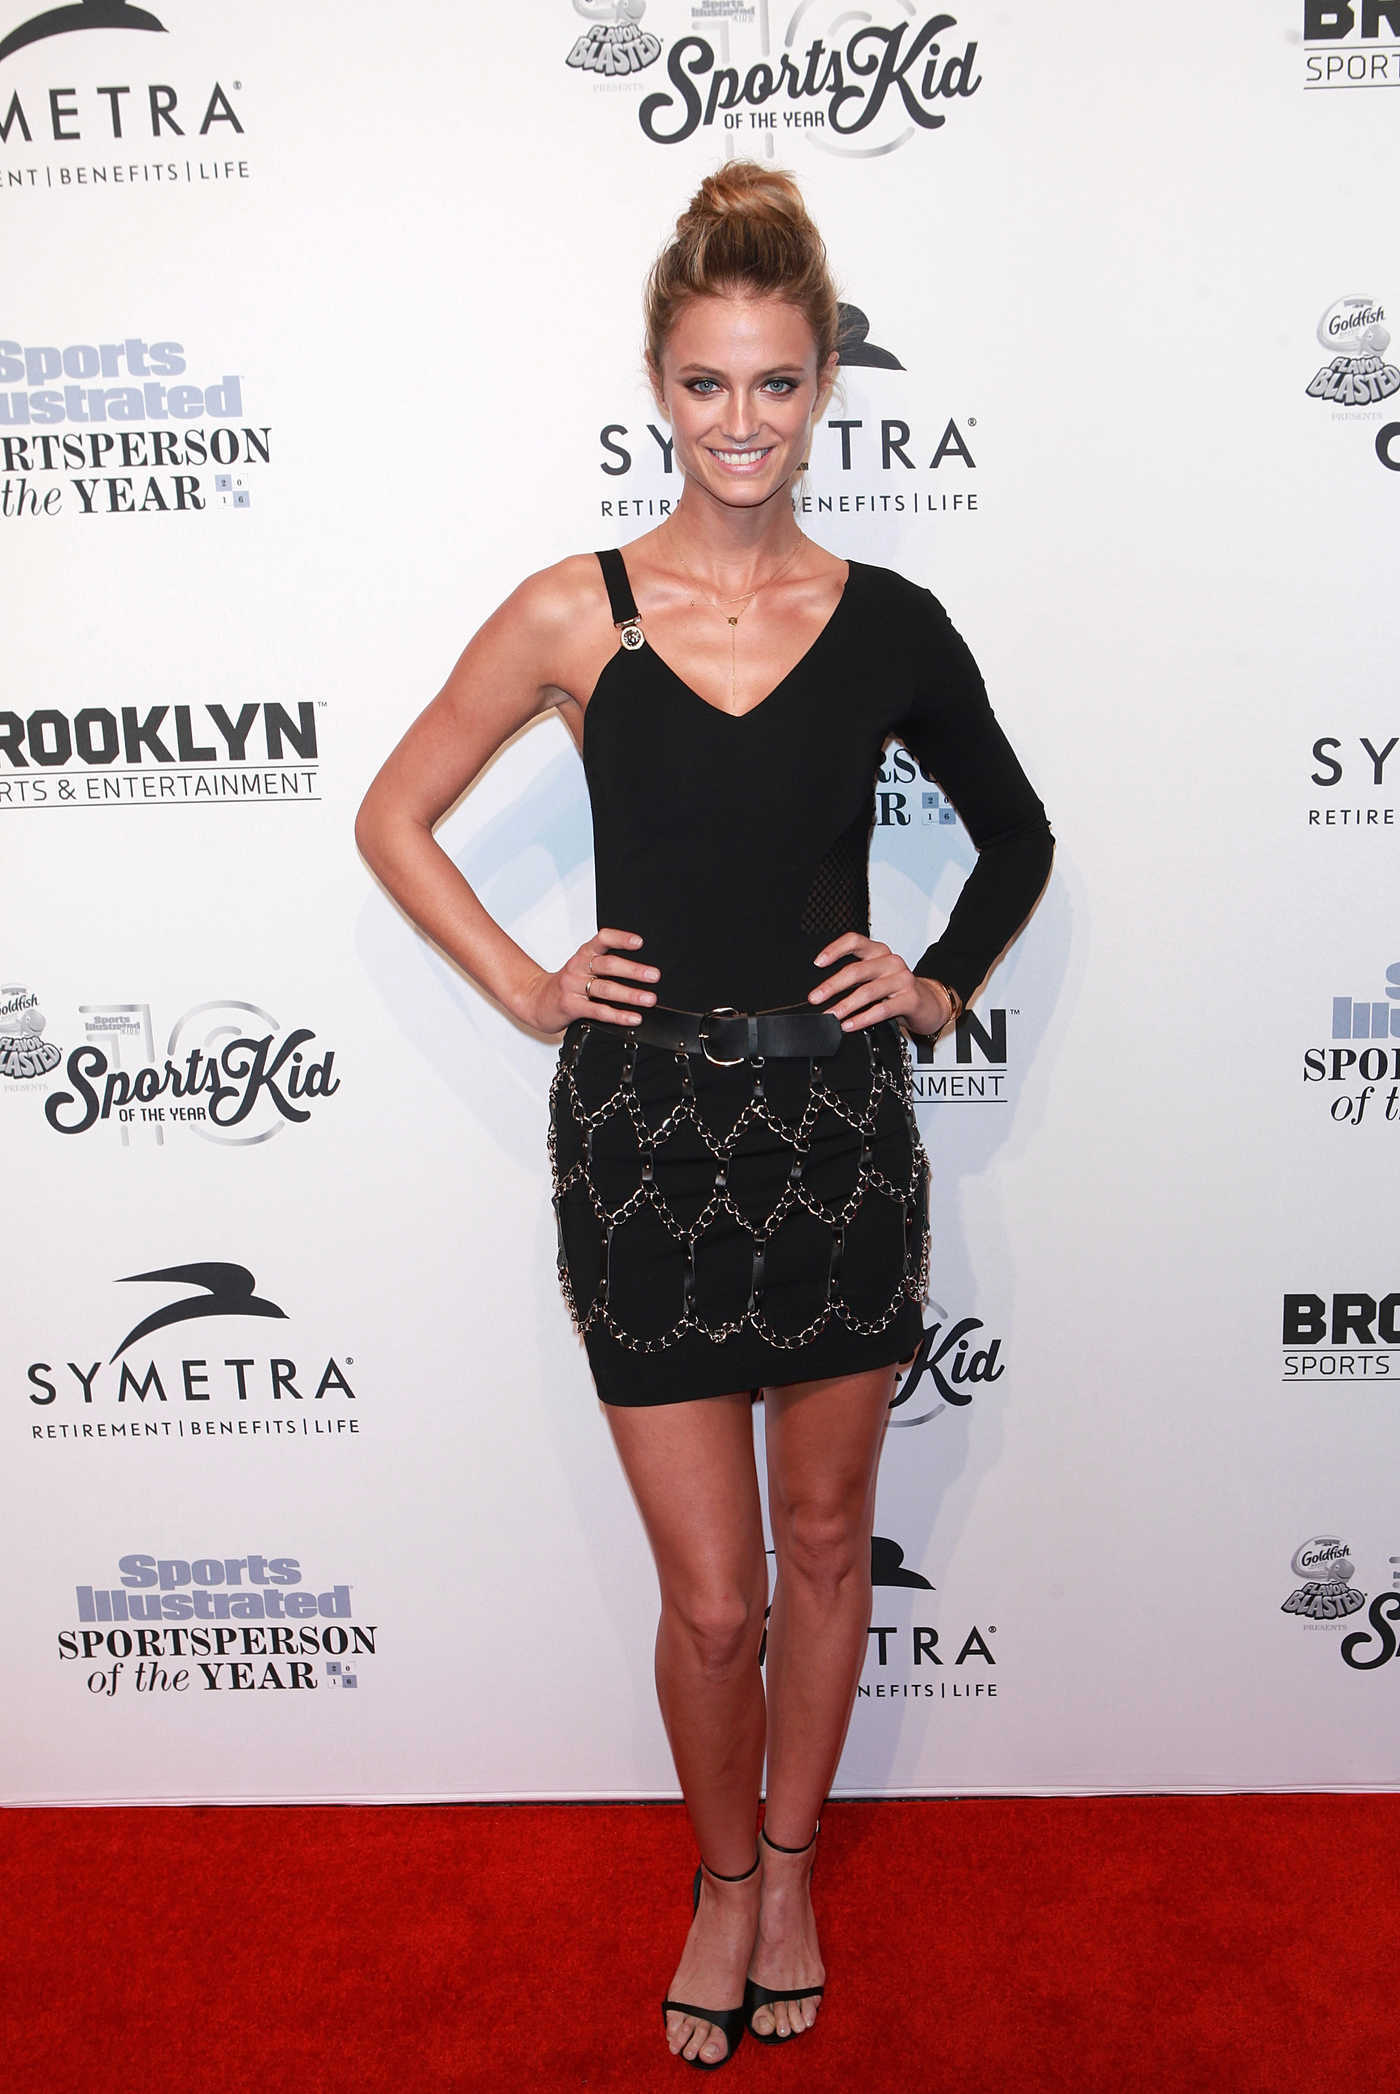 Kate Bock at the Sports Illustrated Sportsperson of the Year 2016 Event at Barclays Center in New York 12/12/2016